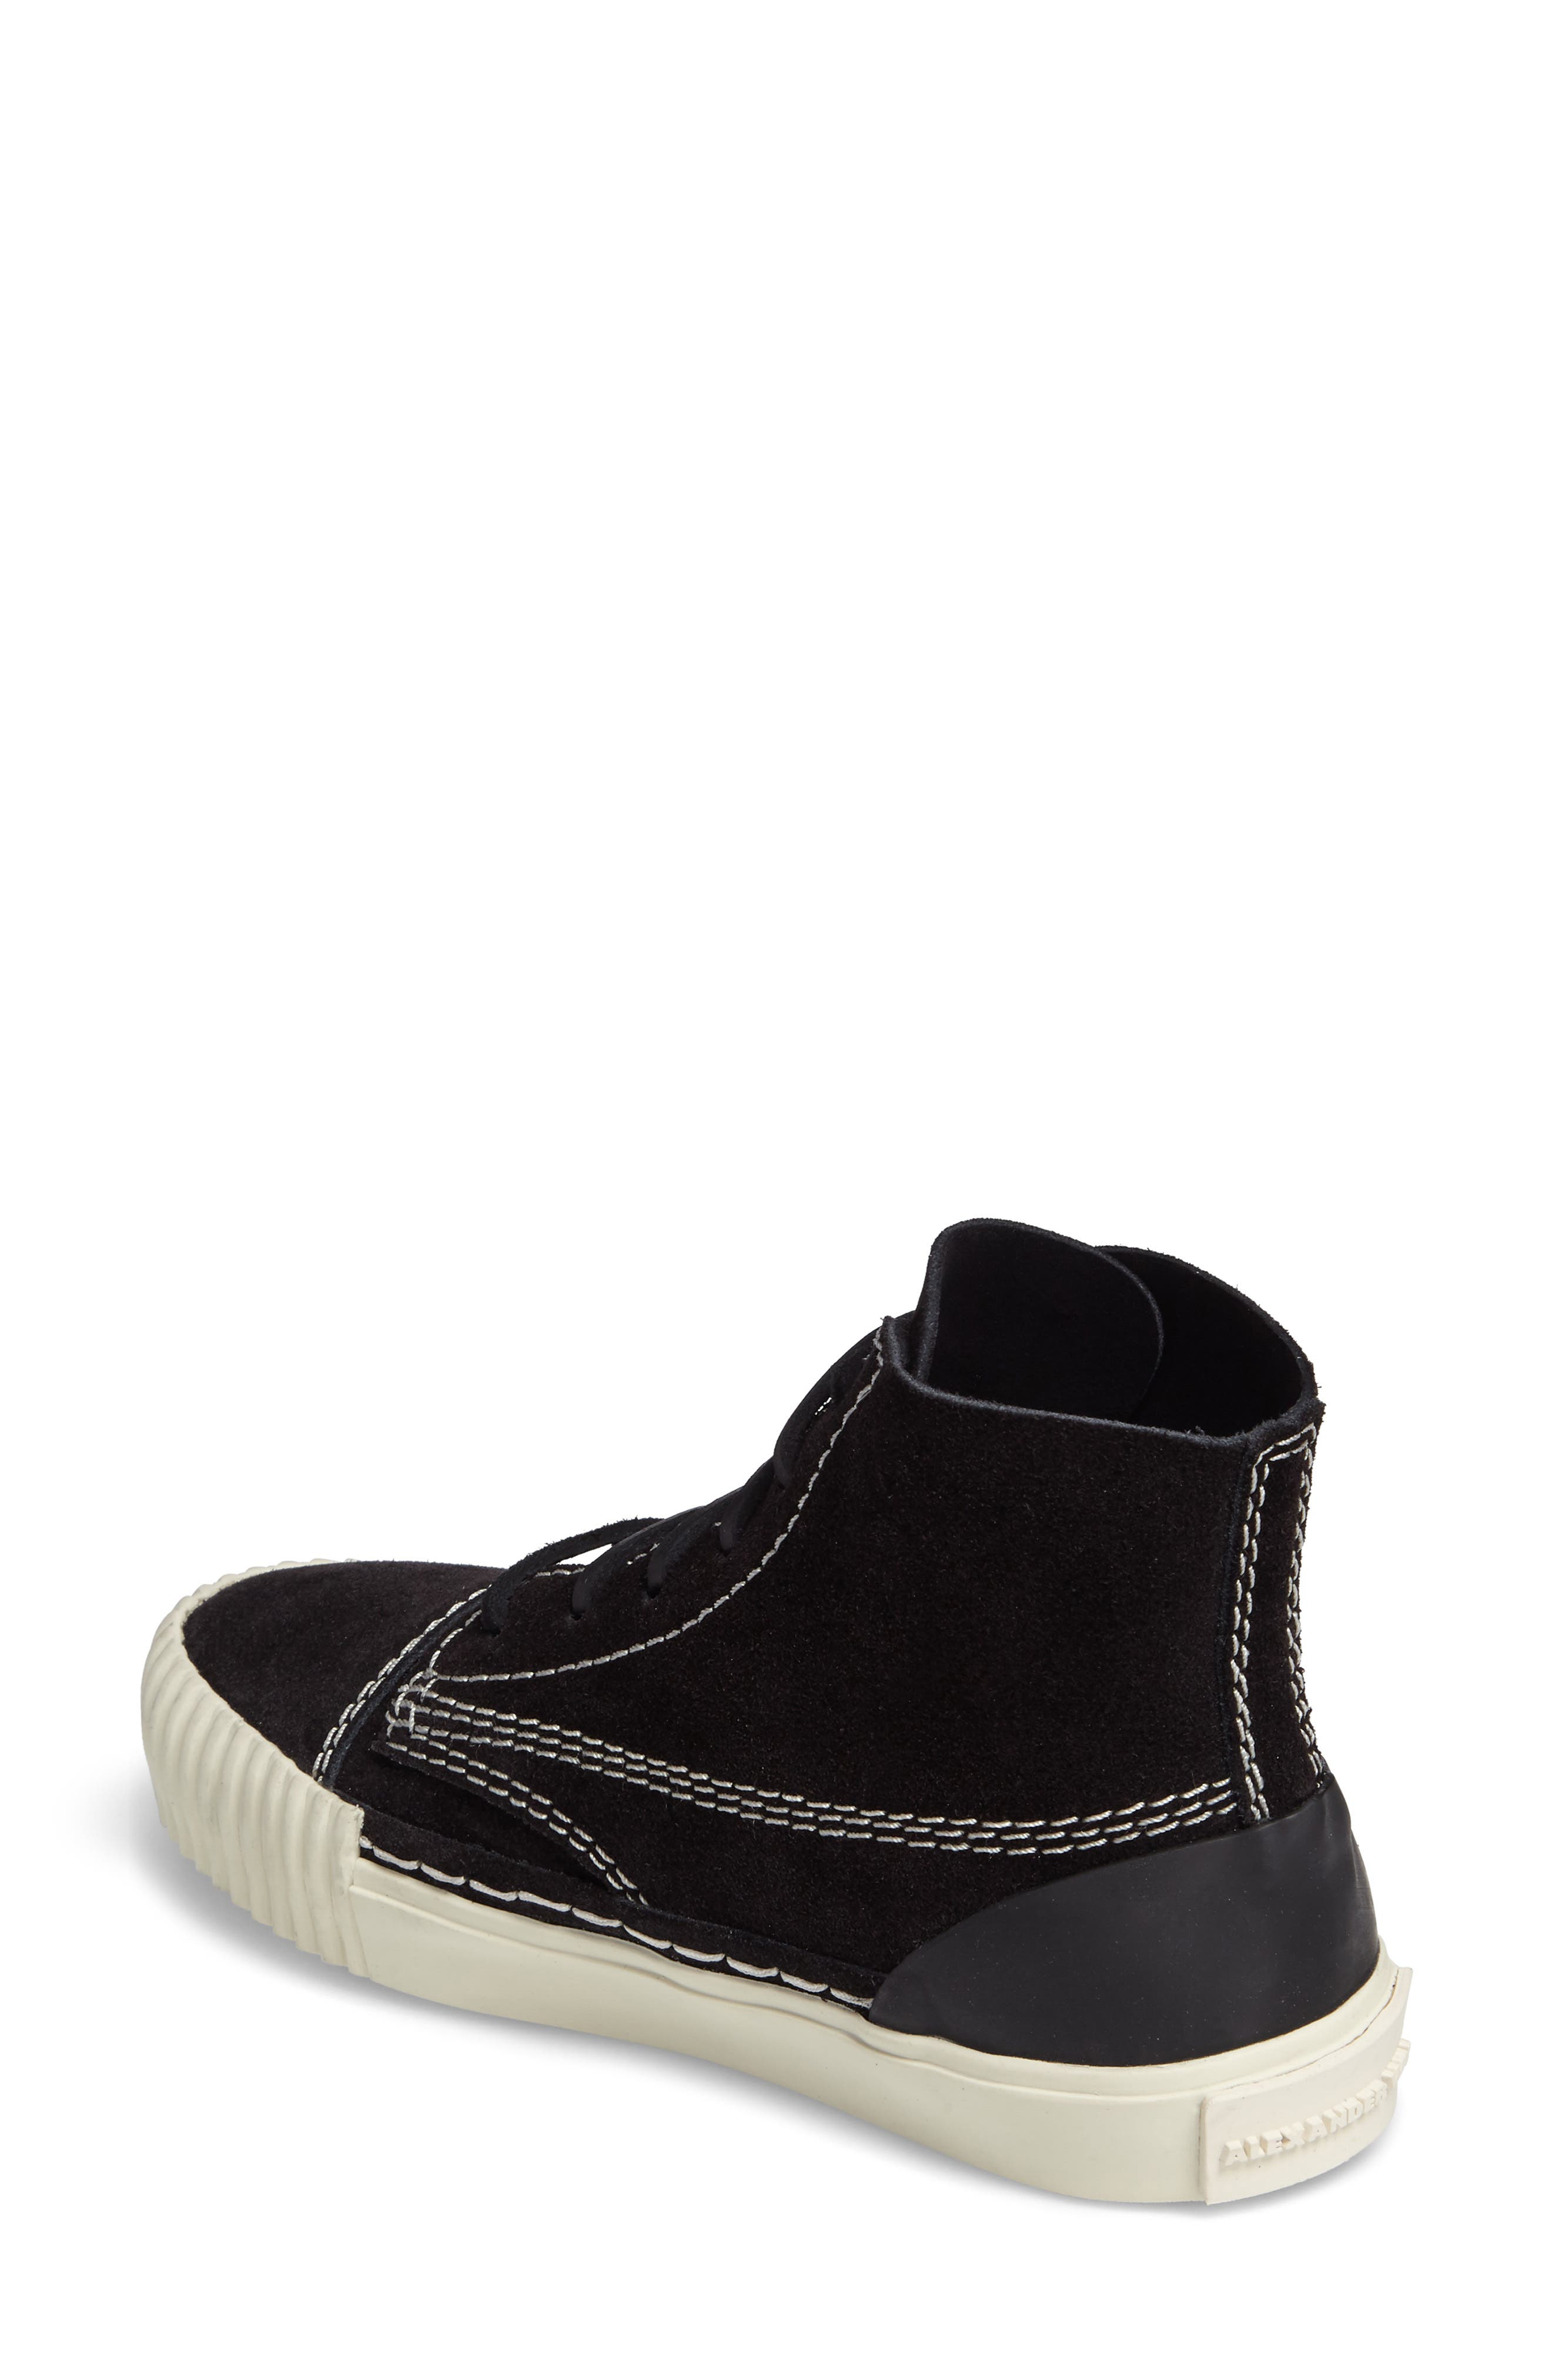 'Perry' Suede High Top Sneaker,                             Alternate thumbnail 2, color,                             001